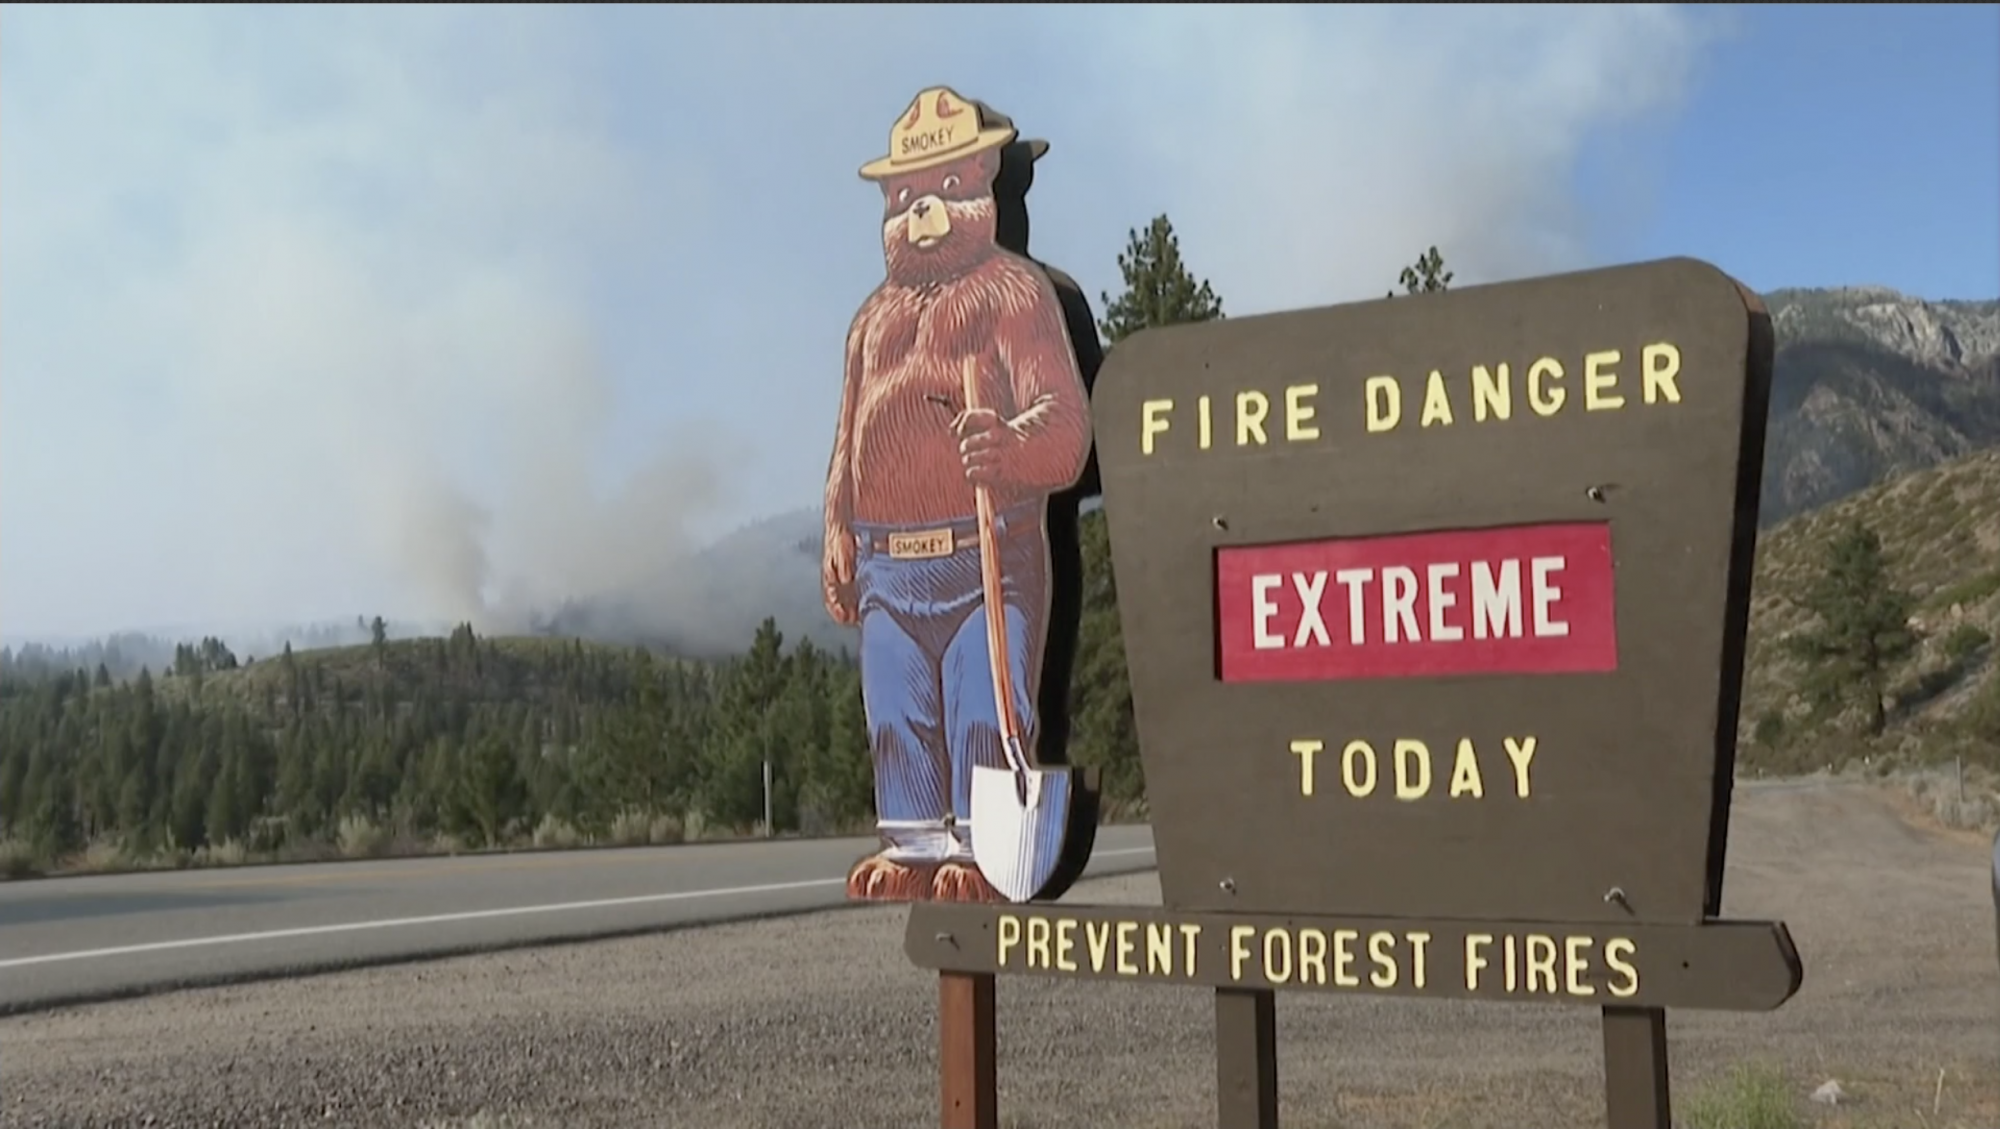 More than 80 wildfires are burning across America's north-west - channel 4